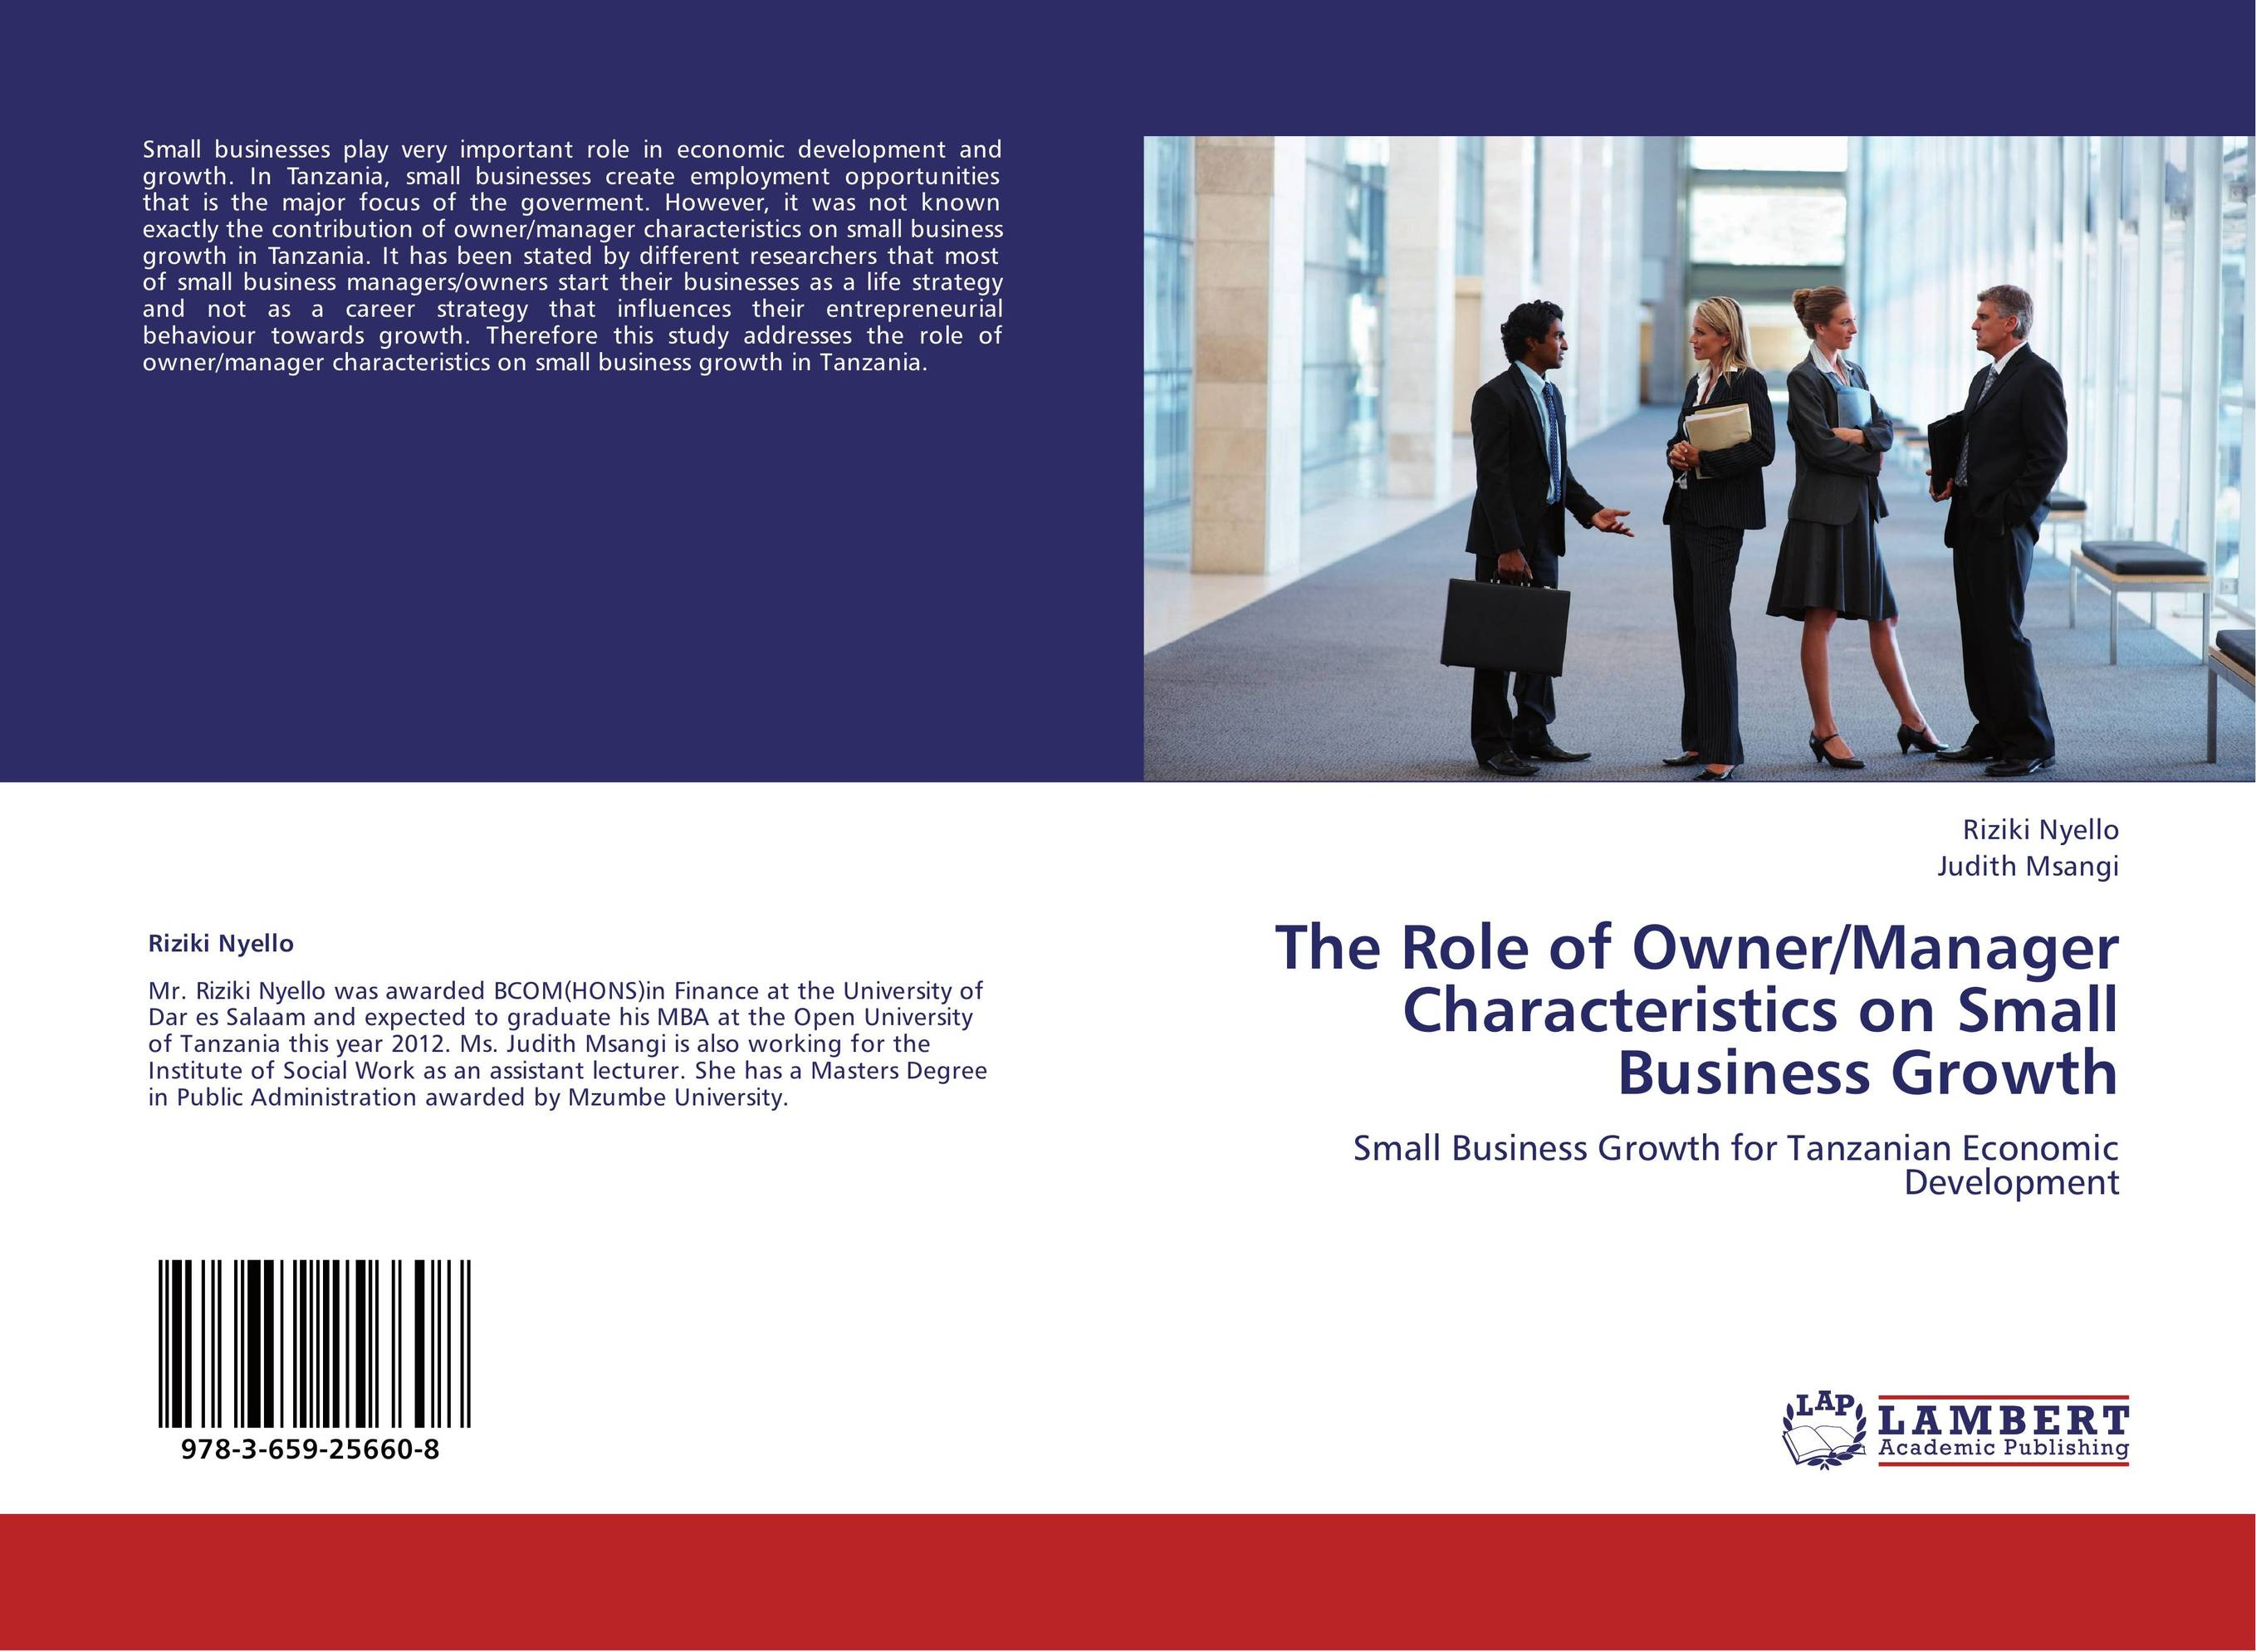 influences and characteristics of entrepreneurial behavior 4 entrepreneurial behaviors 41 uncertainty perception and risk-taking the entrepreneur is a factor in and the study of entrepreneurship reaches back to the work of richard cantillon and adam smith in the late 17th and early 18th centuries.